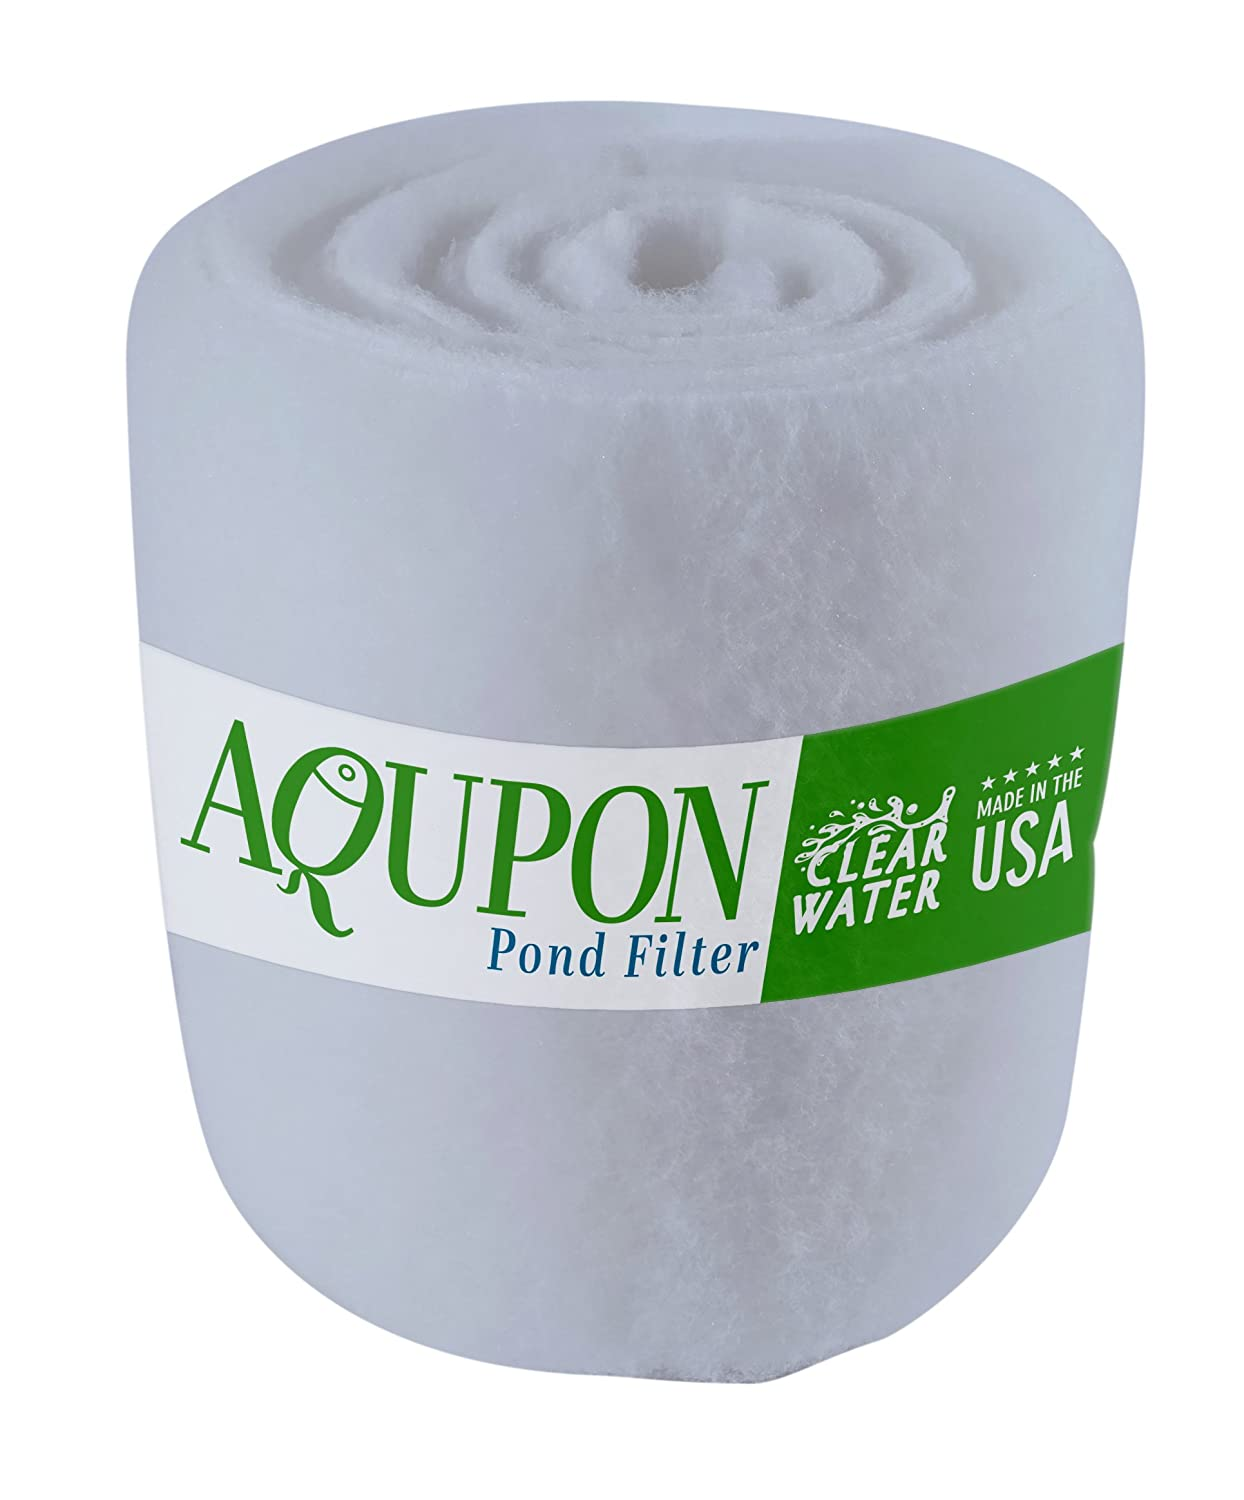 AQUPON Koi Pond Filter Media Pad - Cut to Fit Roll (Dye-Free/Blue Bonded) - 1.25 Inch Thickness (6 ft, Dye-Free)